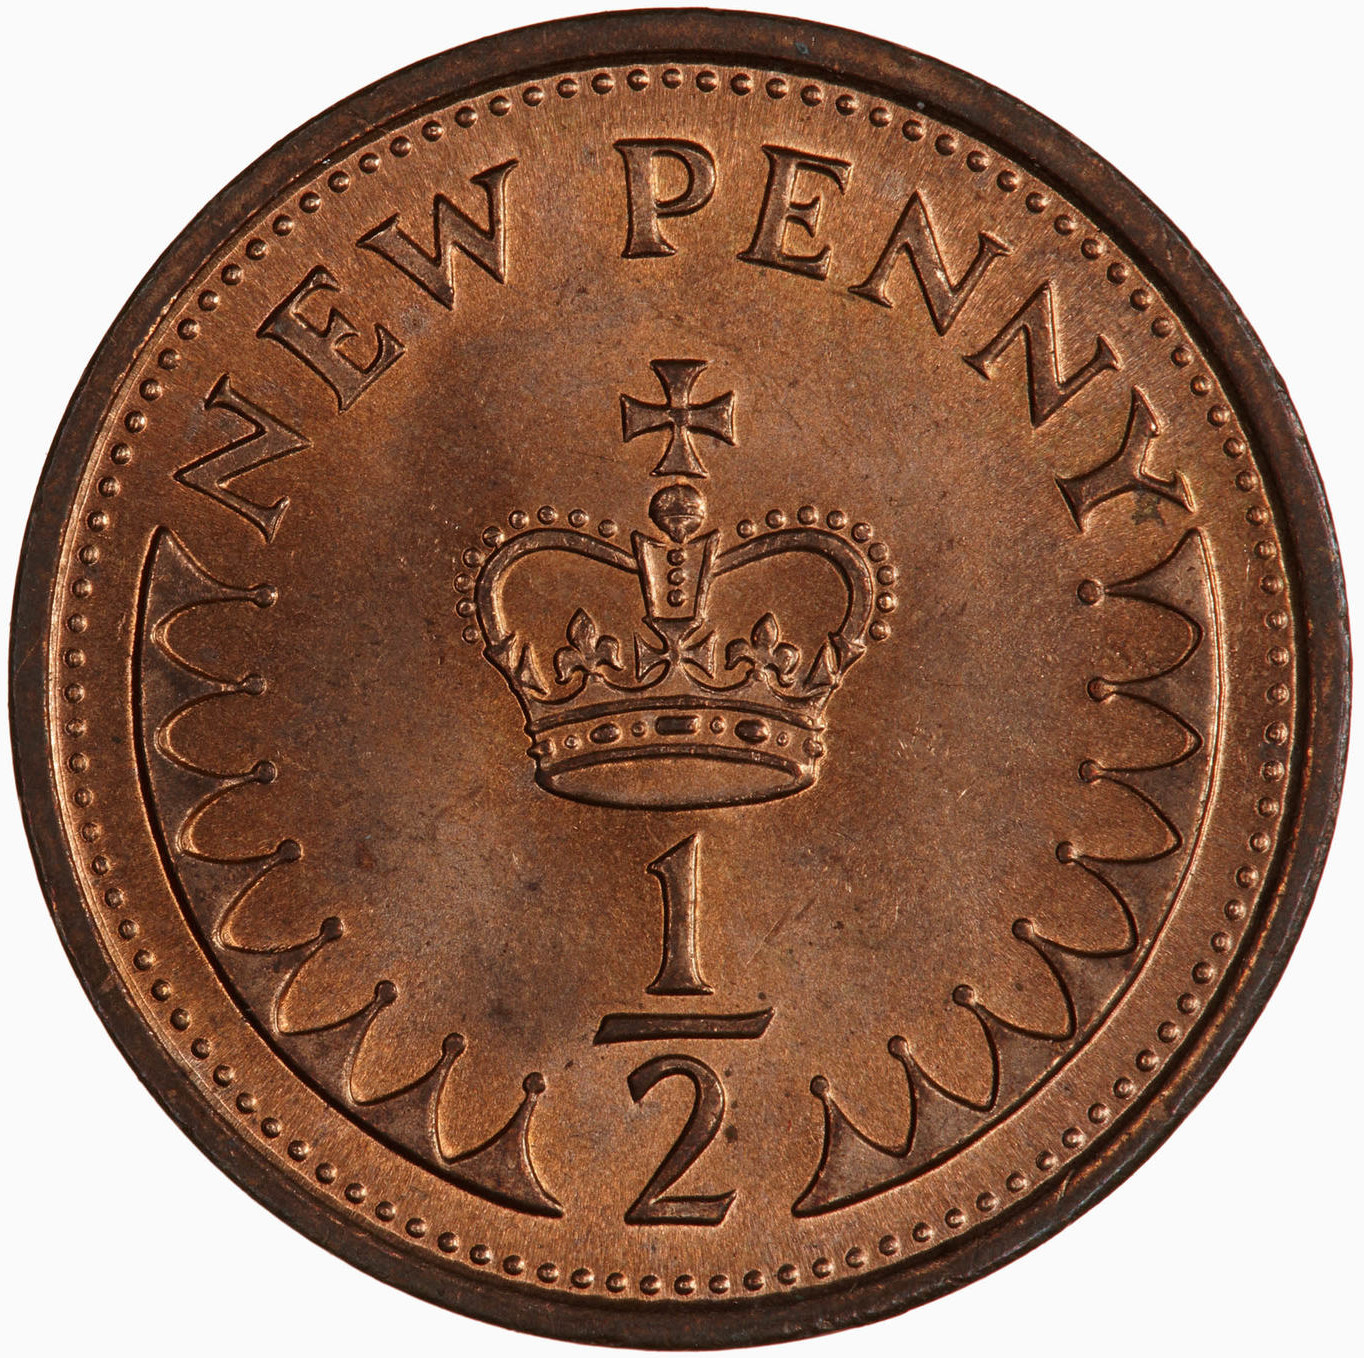 Half Penny 1976: Photo Coin - 1/2 New Penny, Elizabeth II, Great Britain, 1976